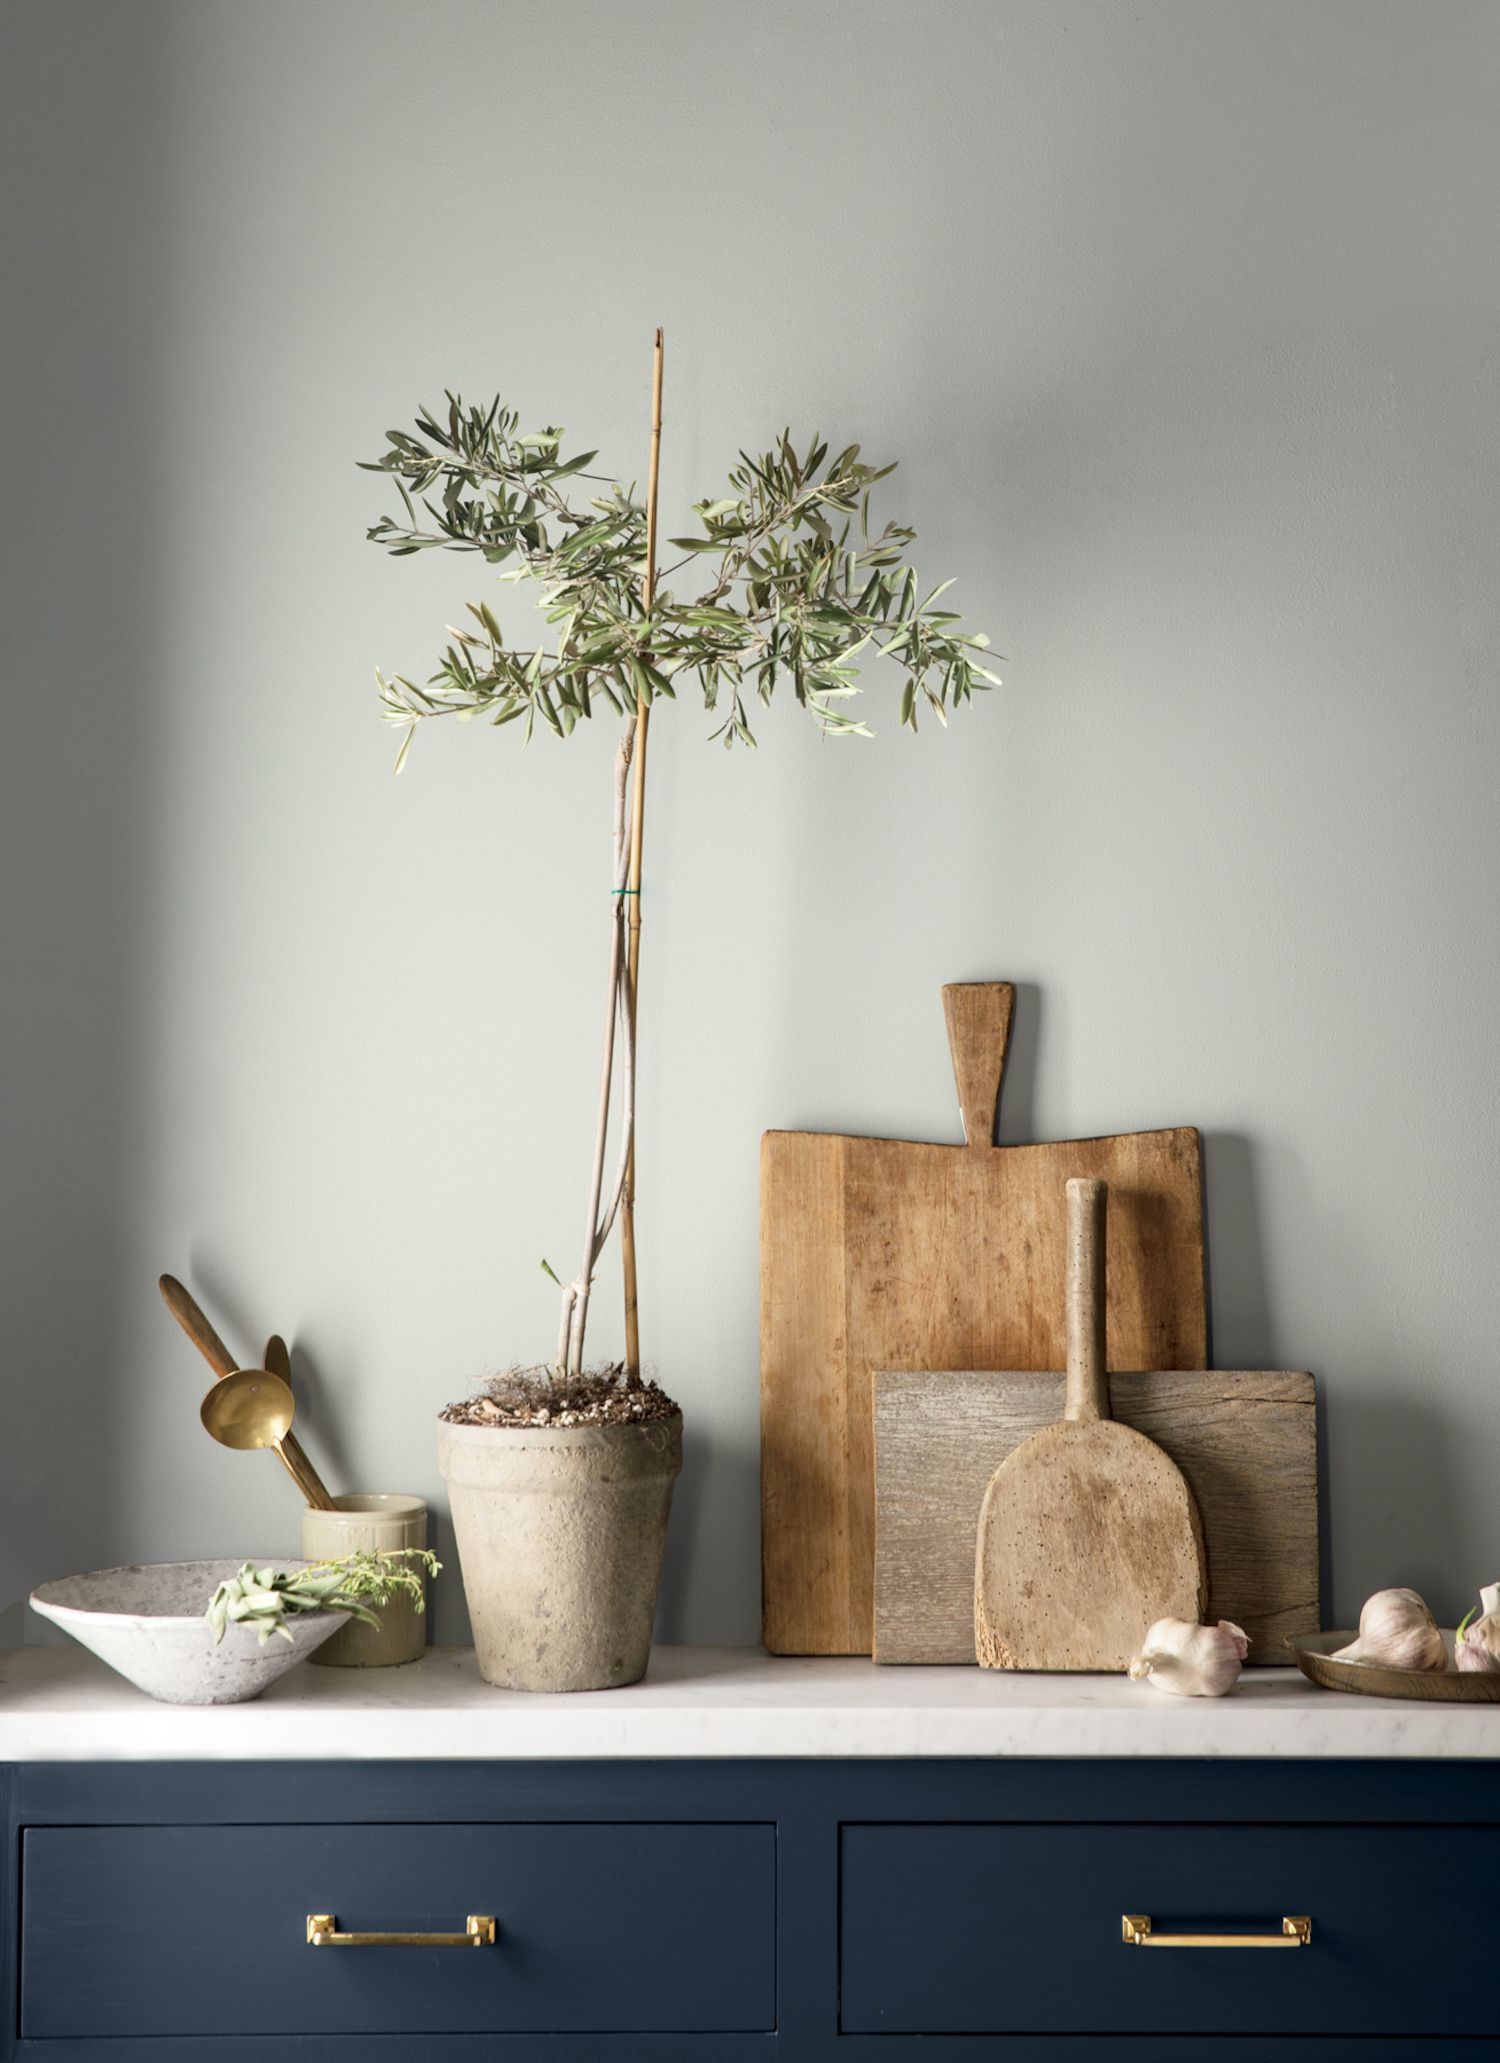 Image Courtesy Of Benjamin Moore